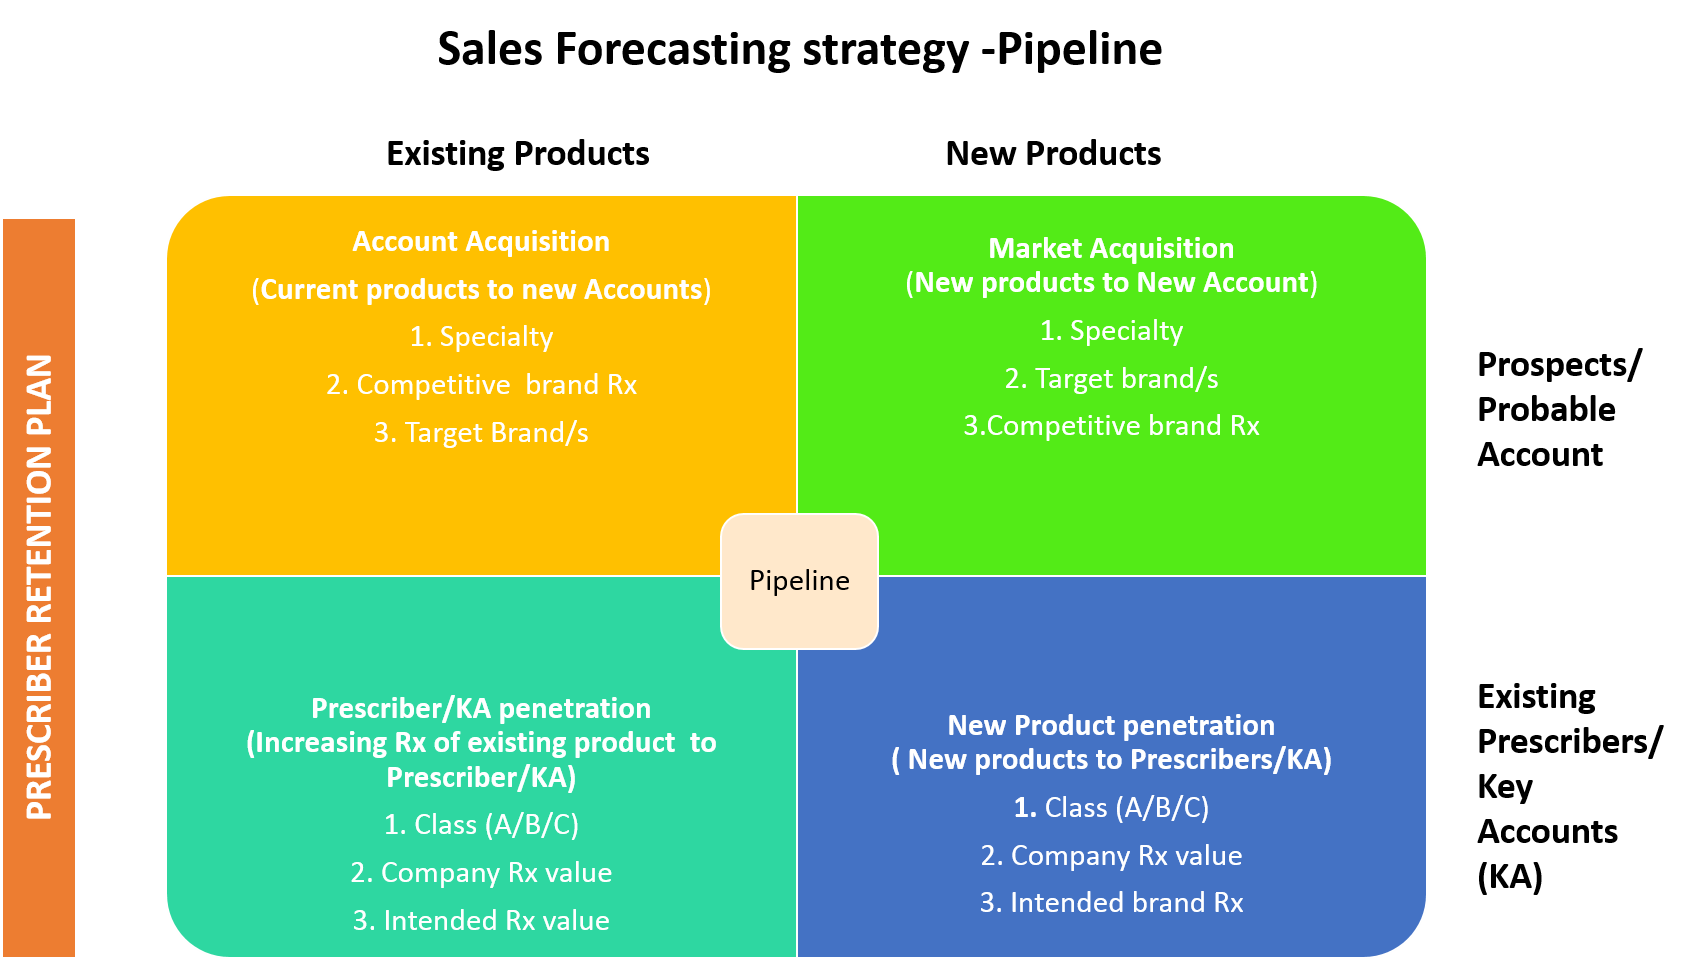 Sales Forecasting Strategy - Pipeline